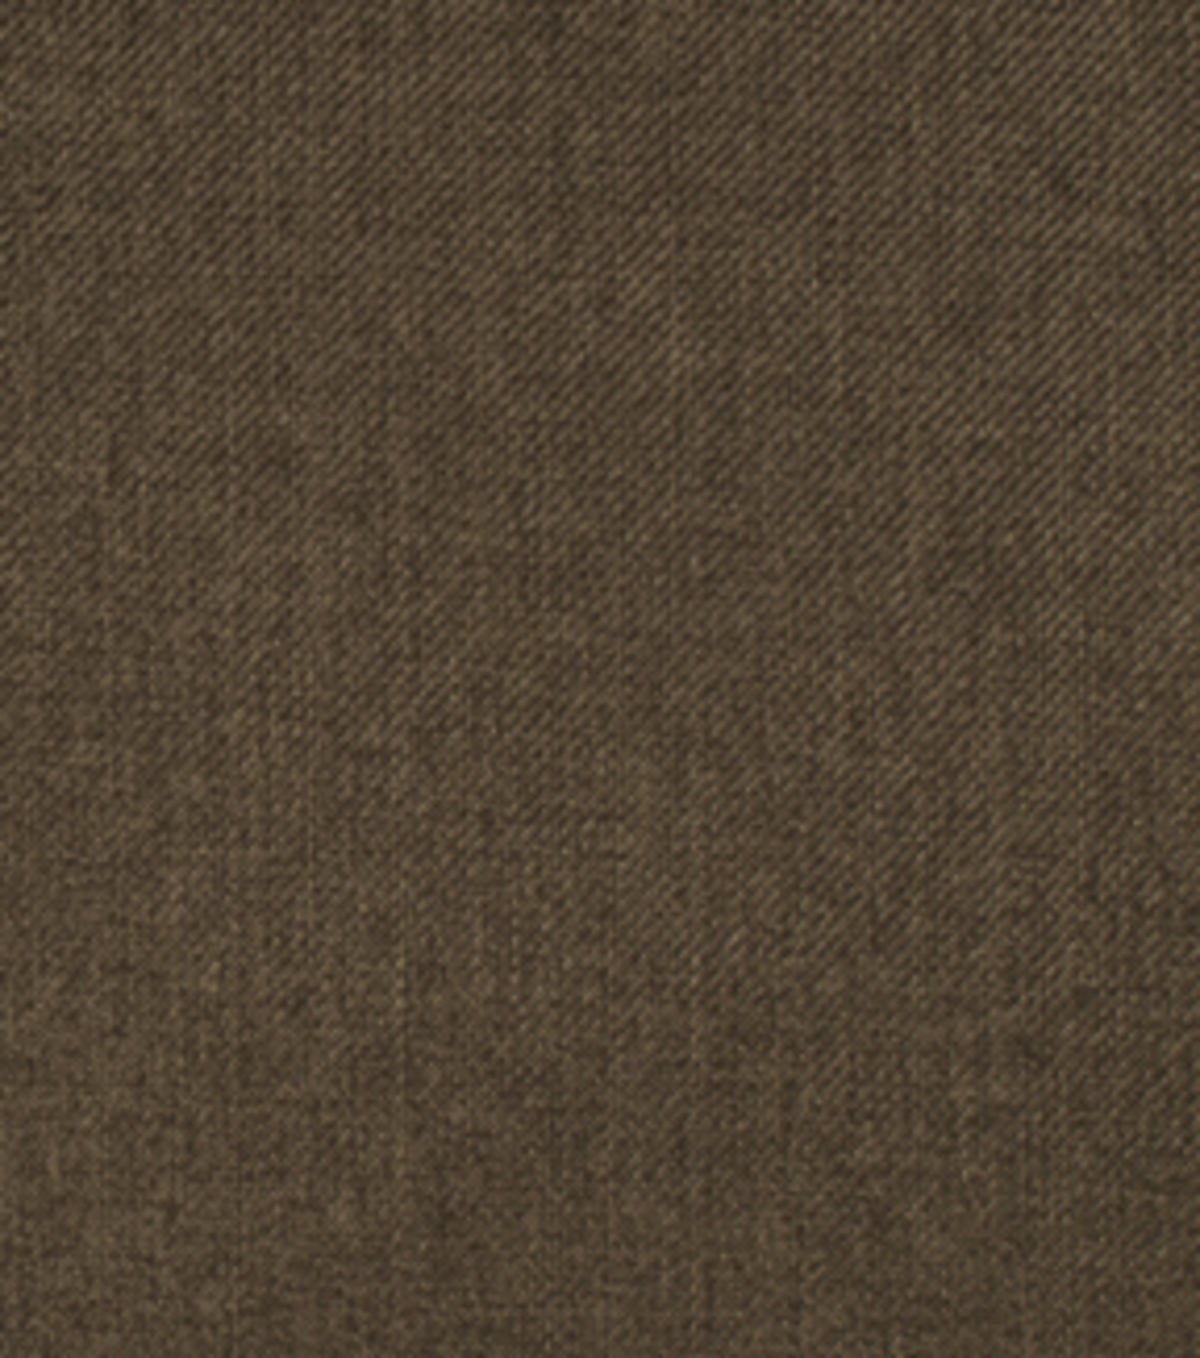 Home Decor 8\u0022x8\u0022 Fabric Swatch-Eaton Square Heston Chocolate